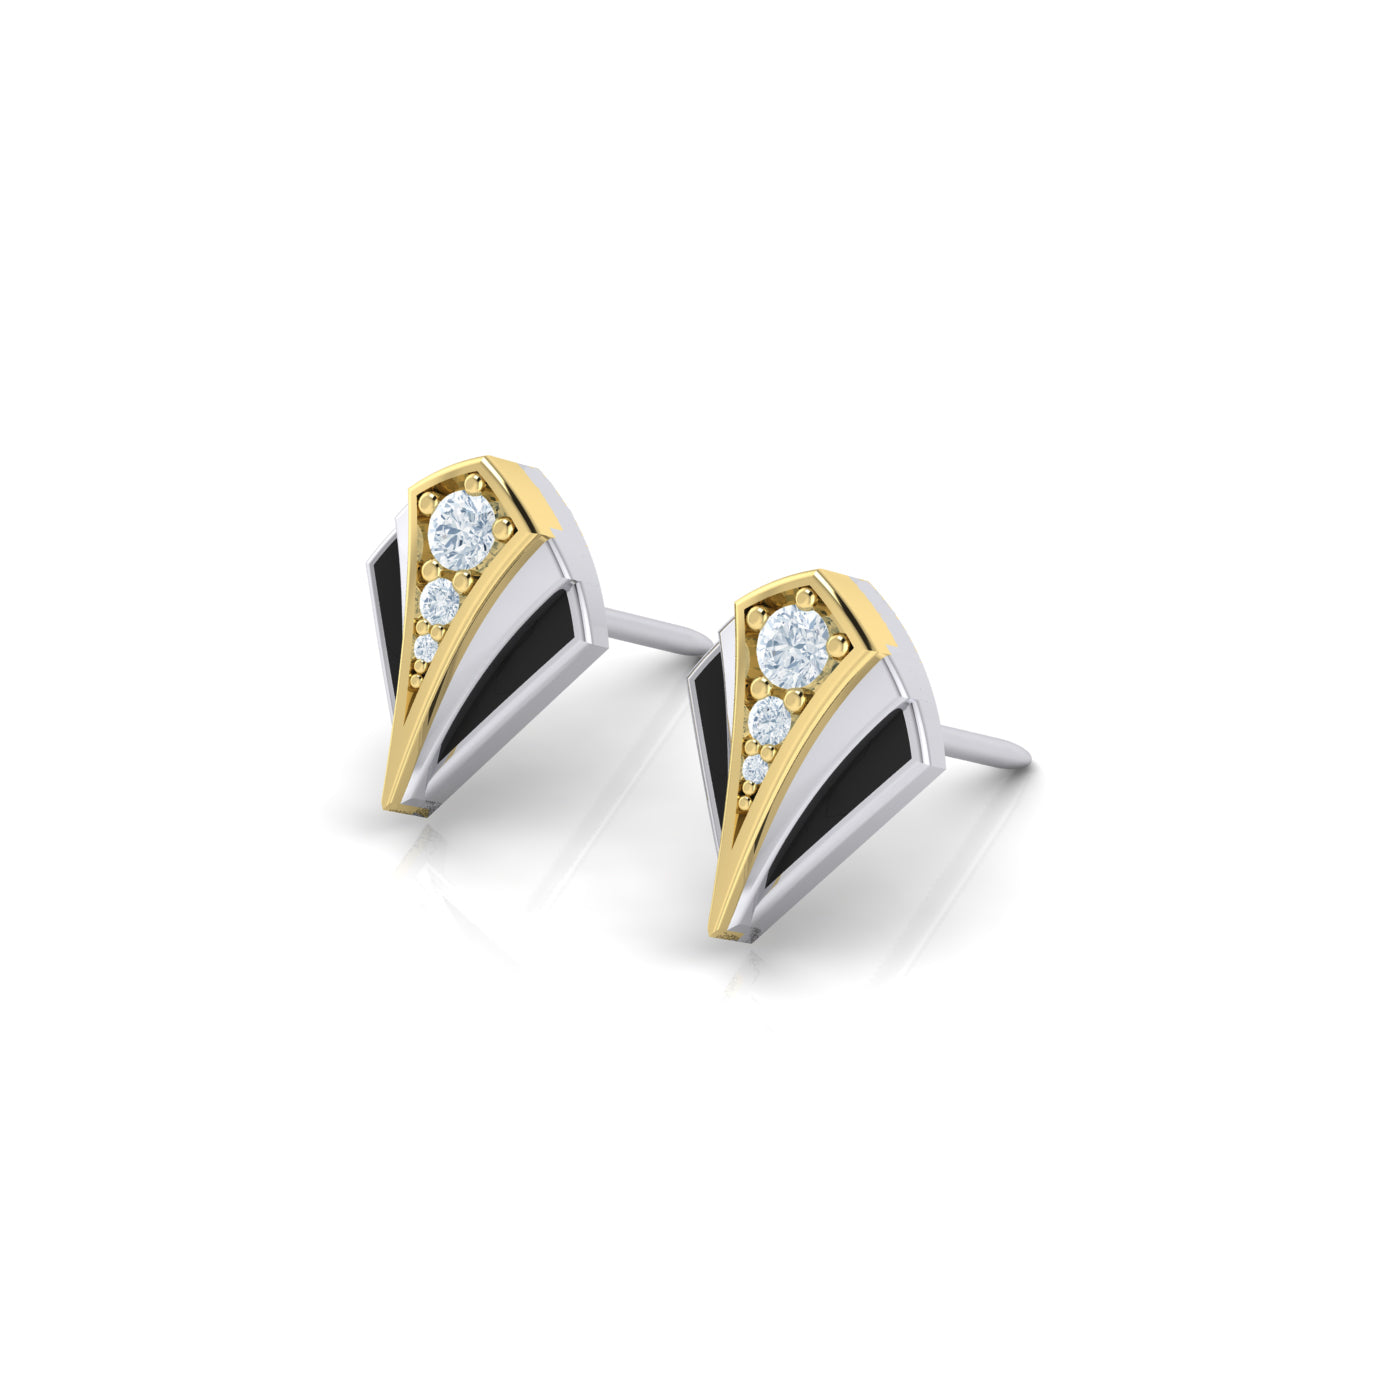 gold and enamel stud earrings